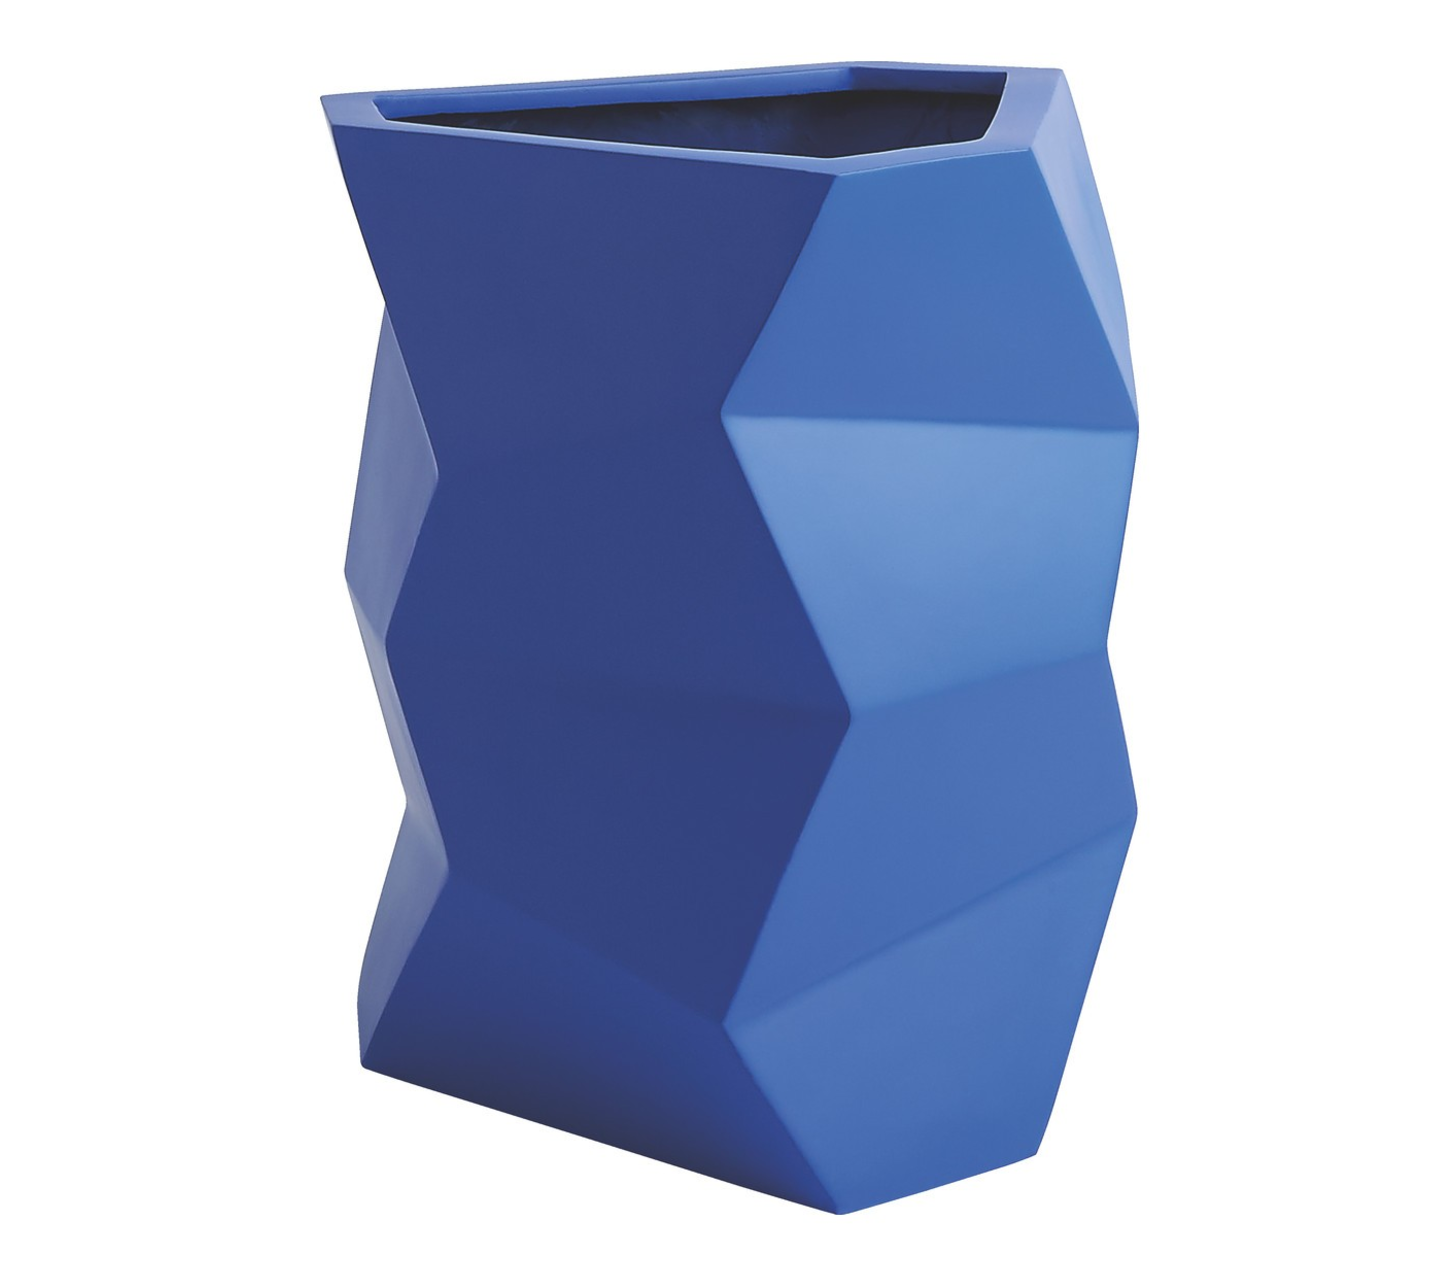 FACETED Blue Faceted Fibreglass Planter 46 X 39cm